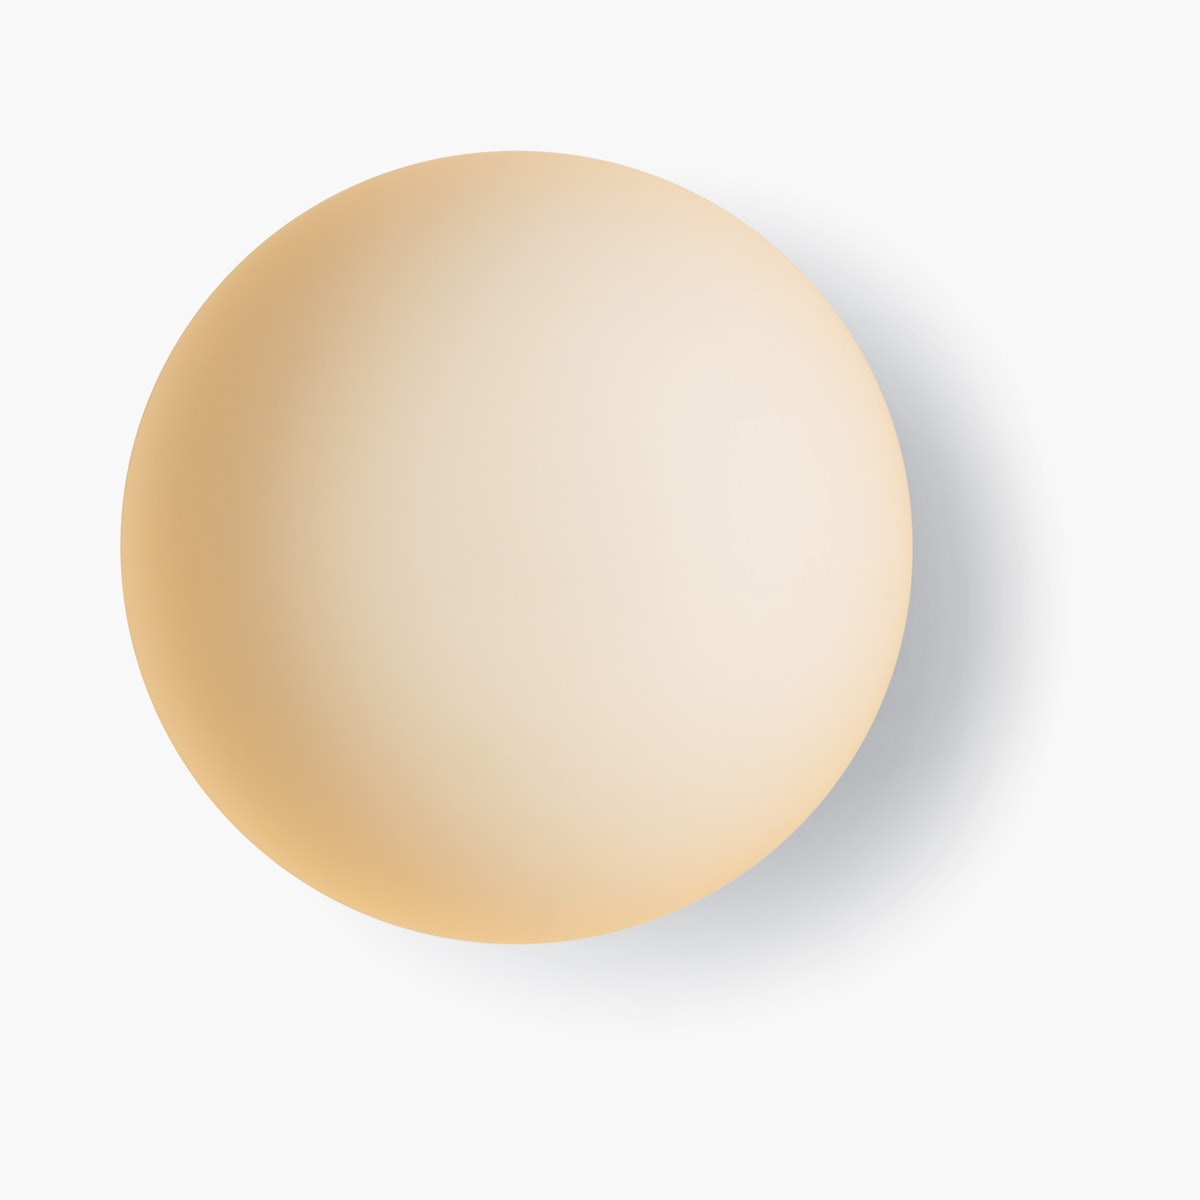 Glo-Ball Sconce